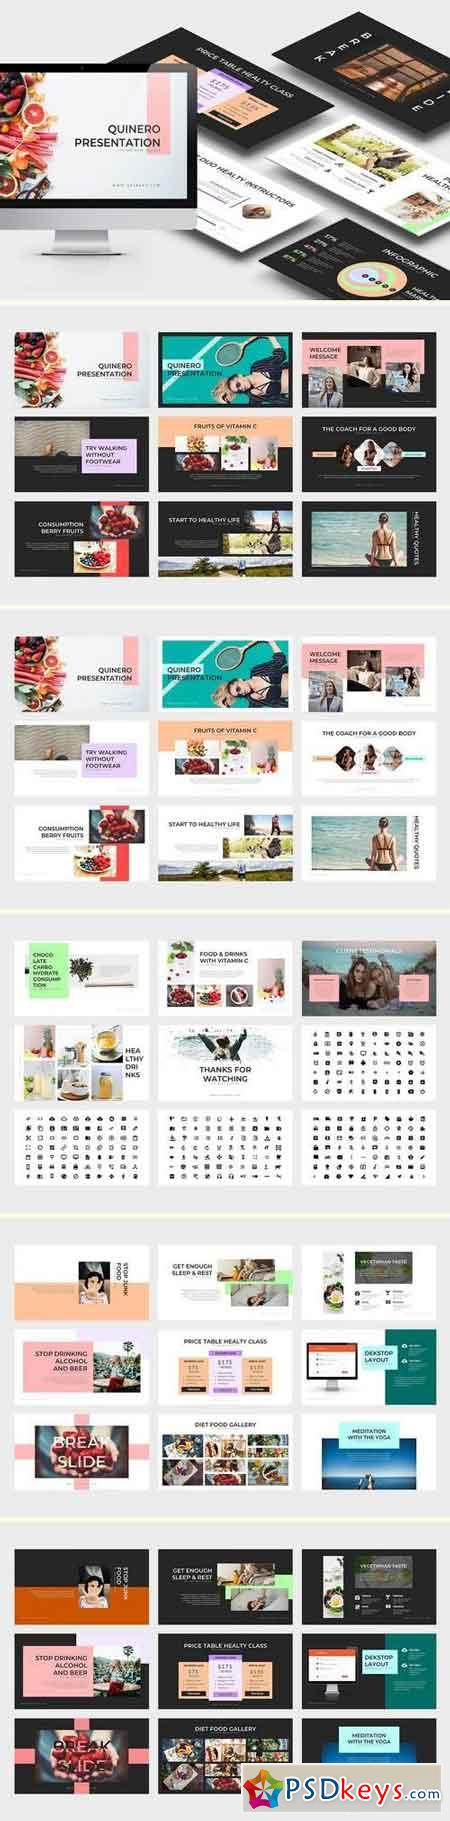 Quinero Healthy Lifestyle Powerpoint & Keynote Template